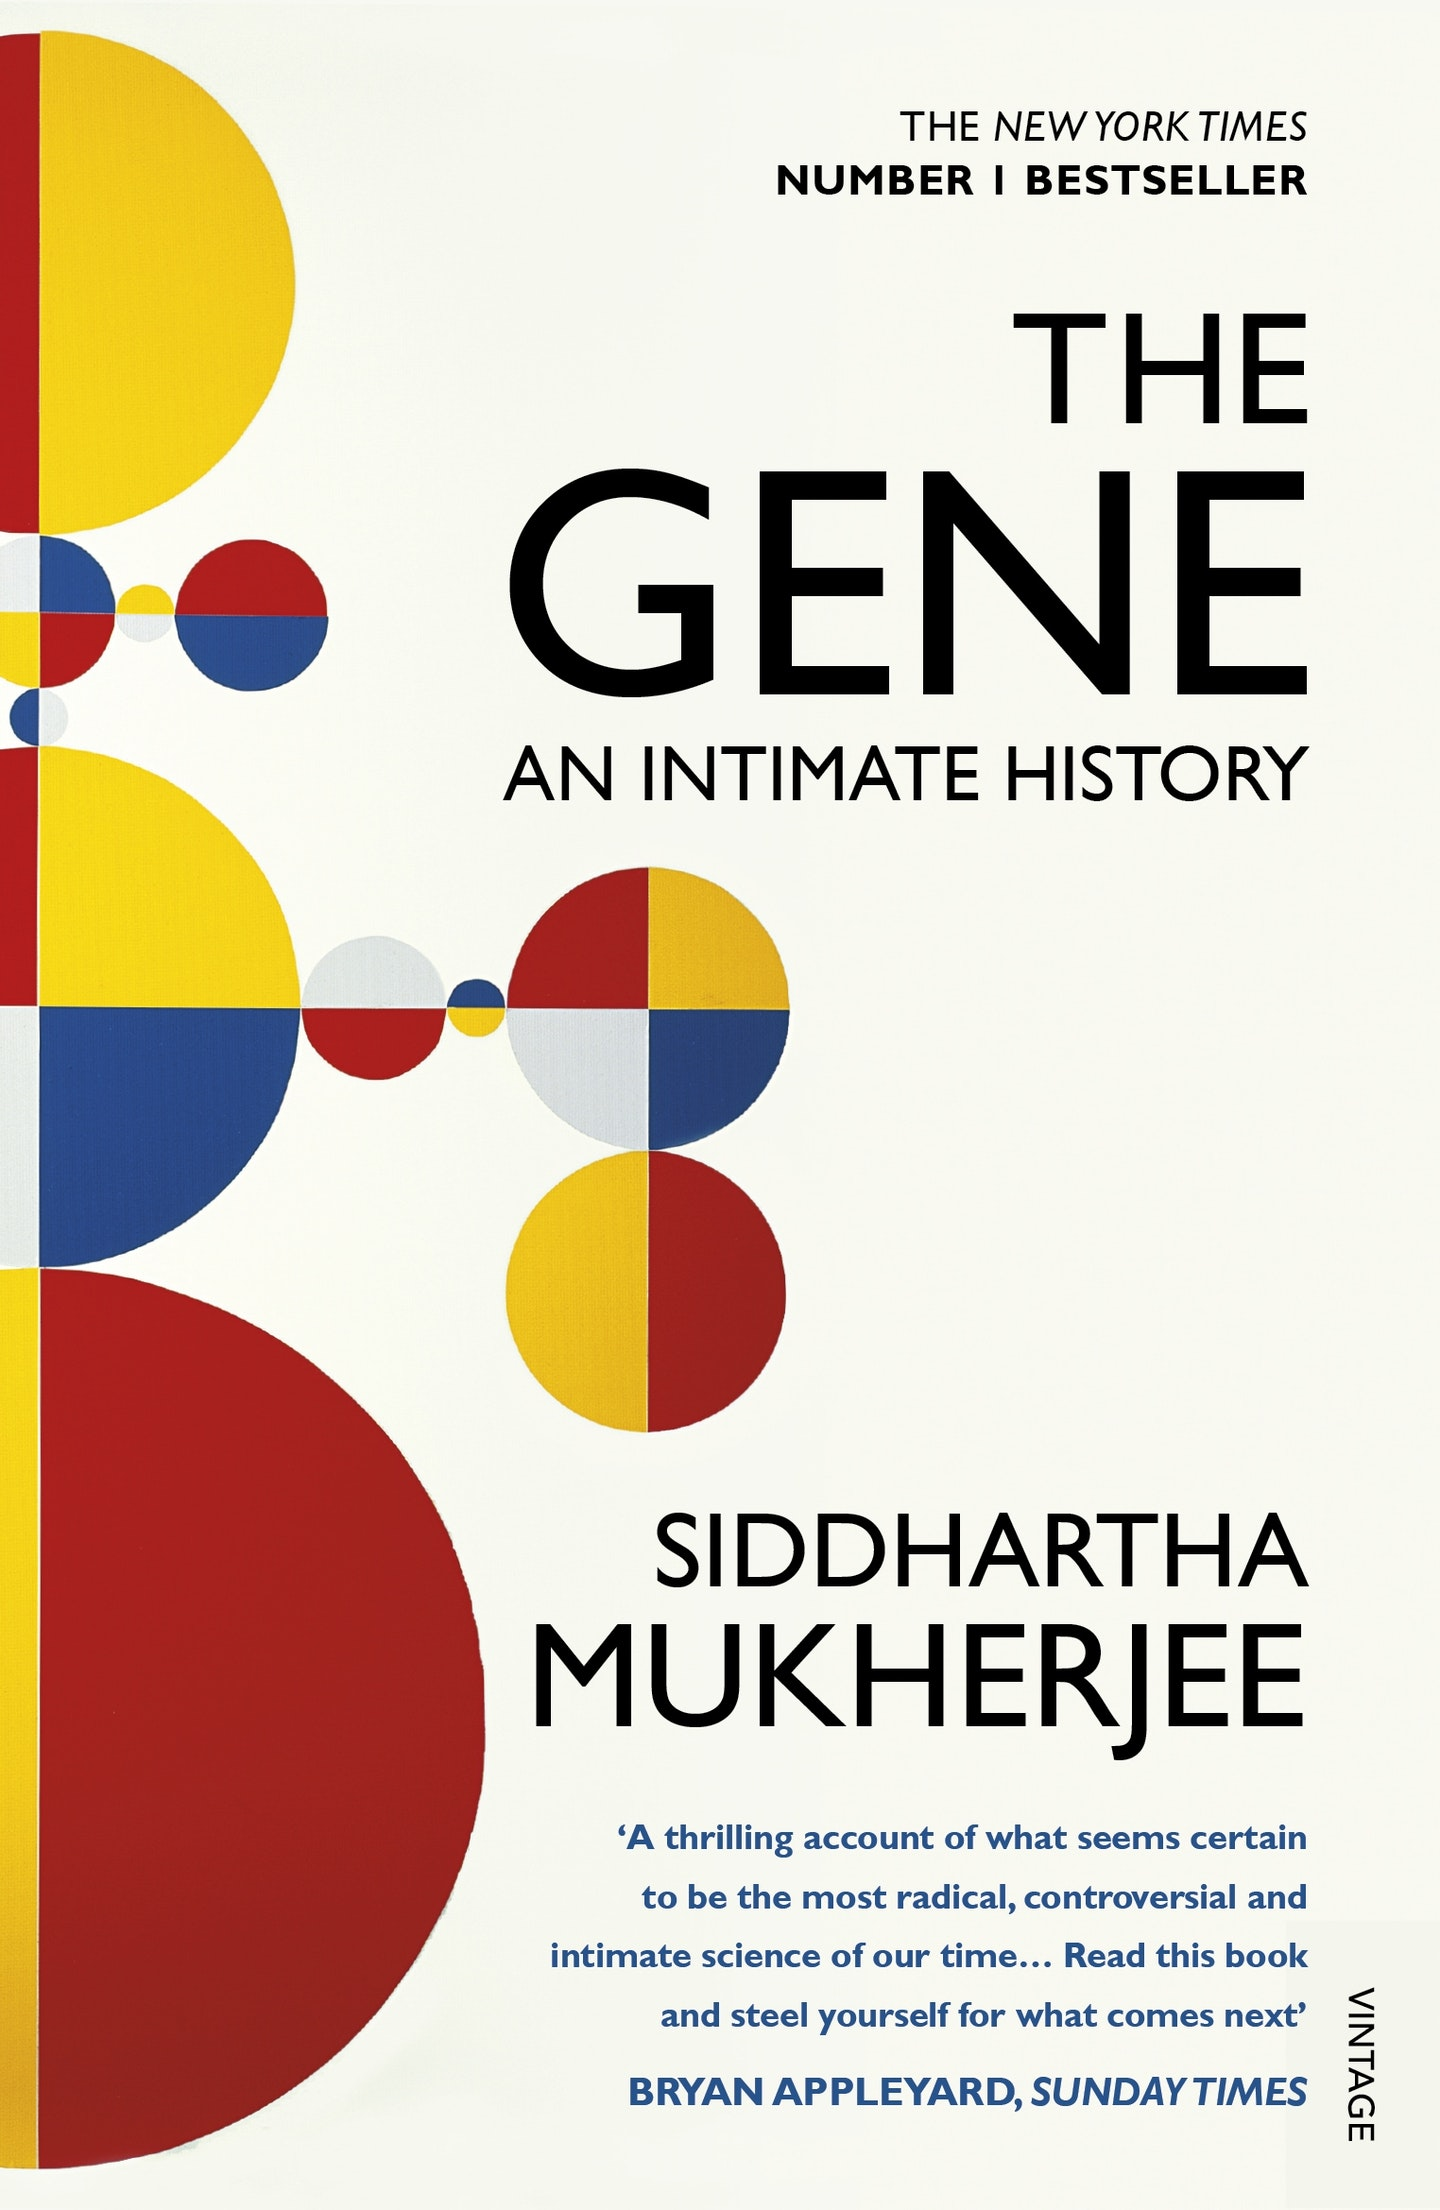 The Gene by